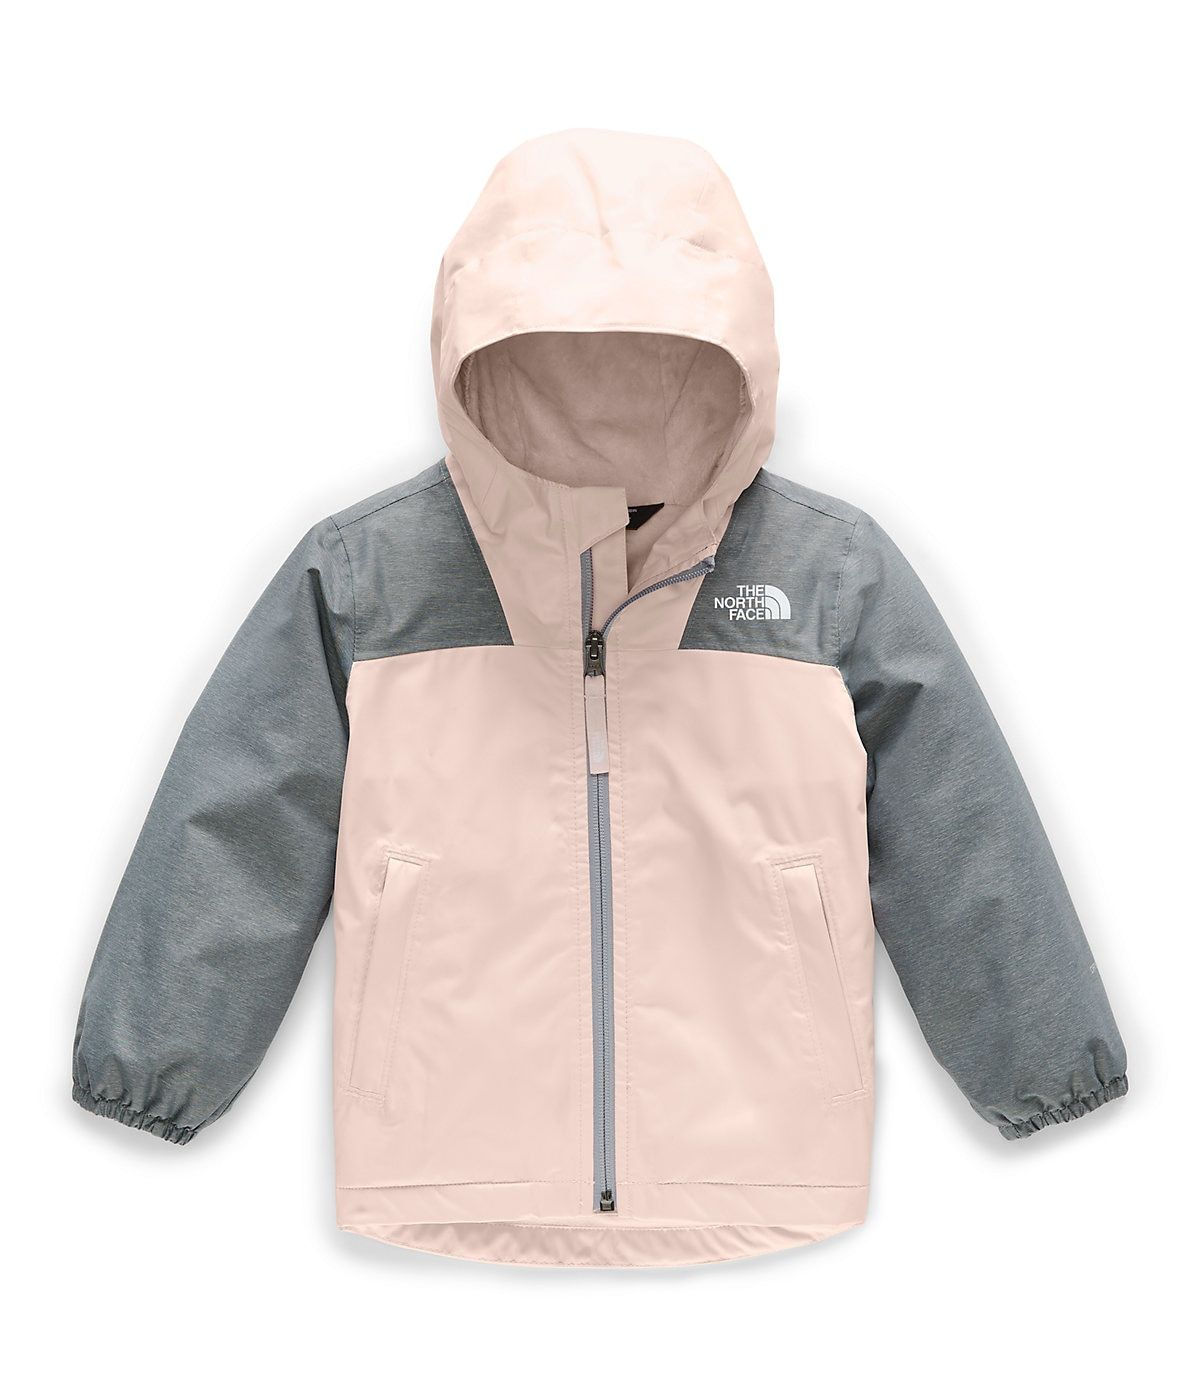 Toddler Warm Storm Jacket The North Face North Face Girls The North Face North Face Kids [ 1396 x 1200 Pixel ]